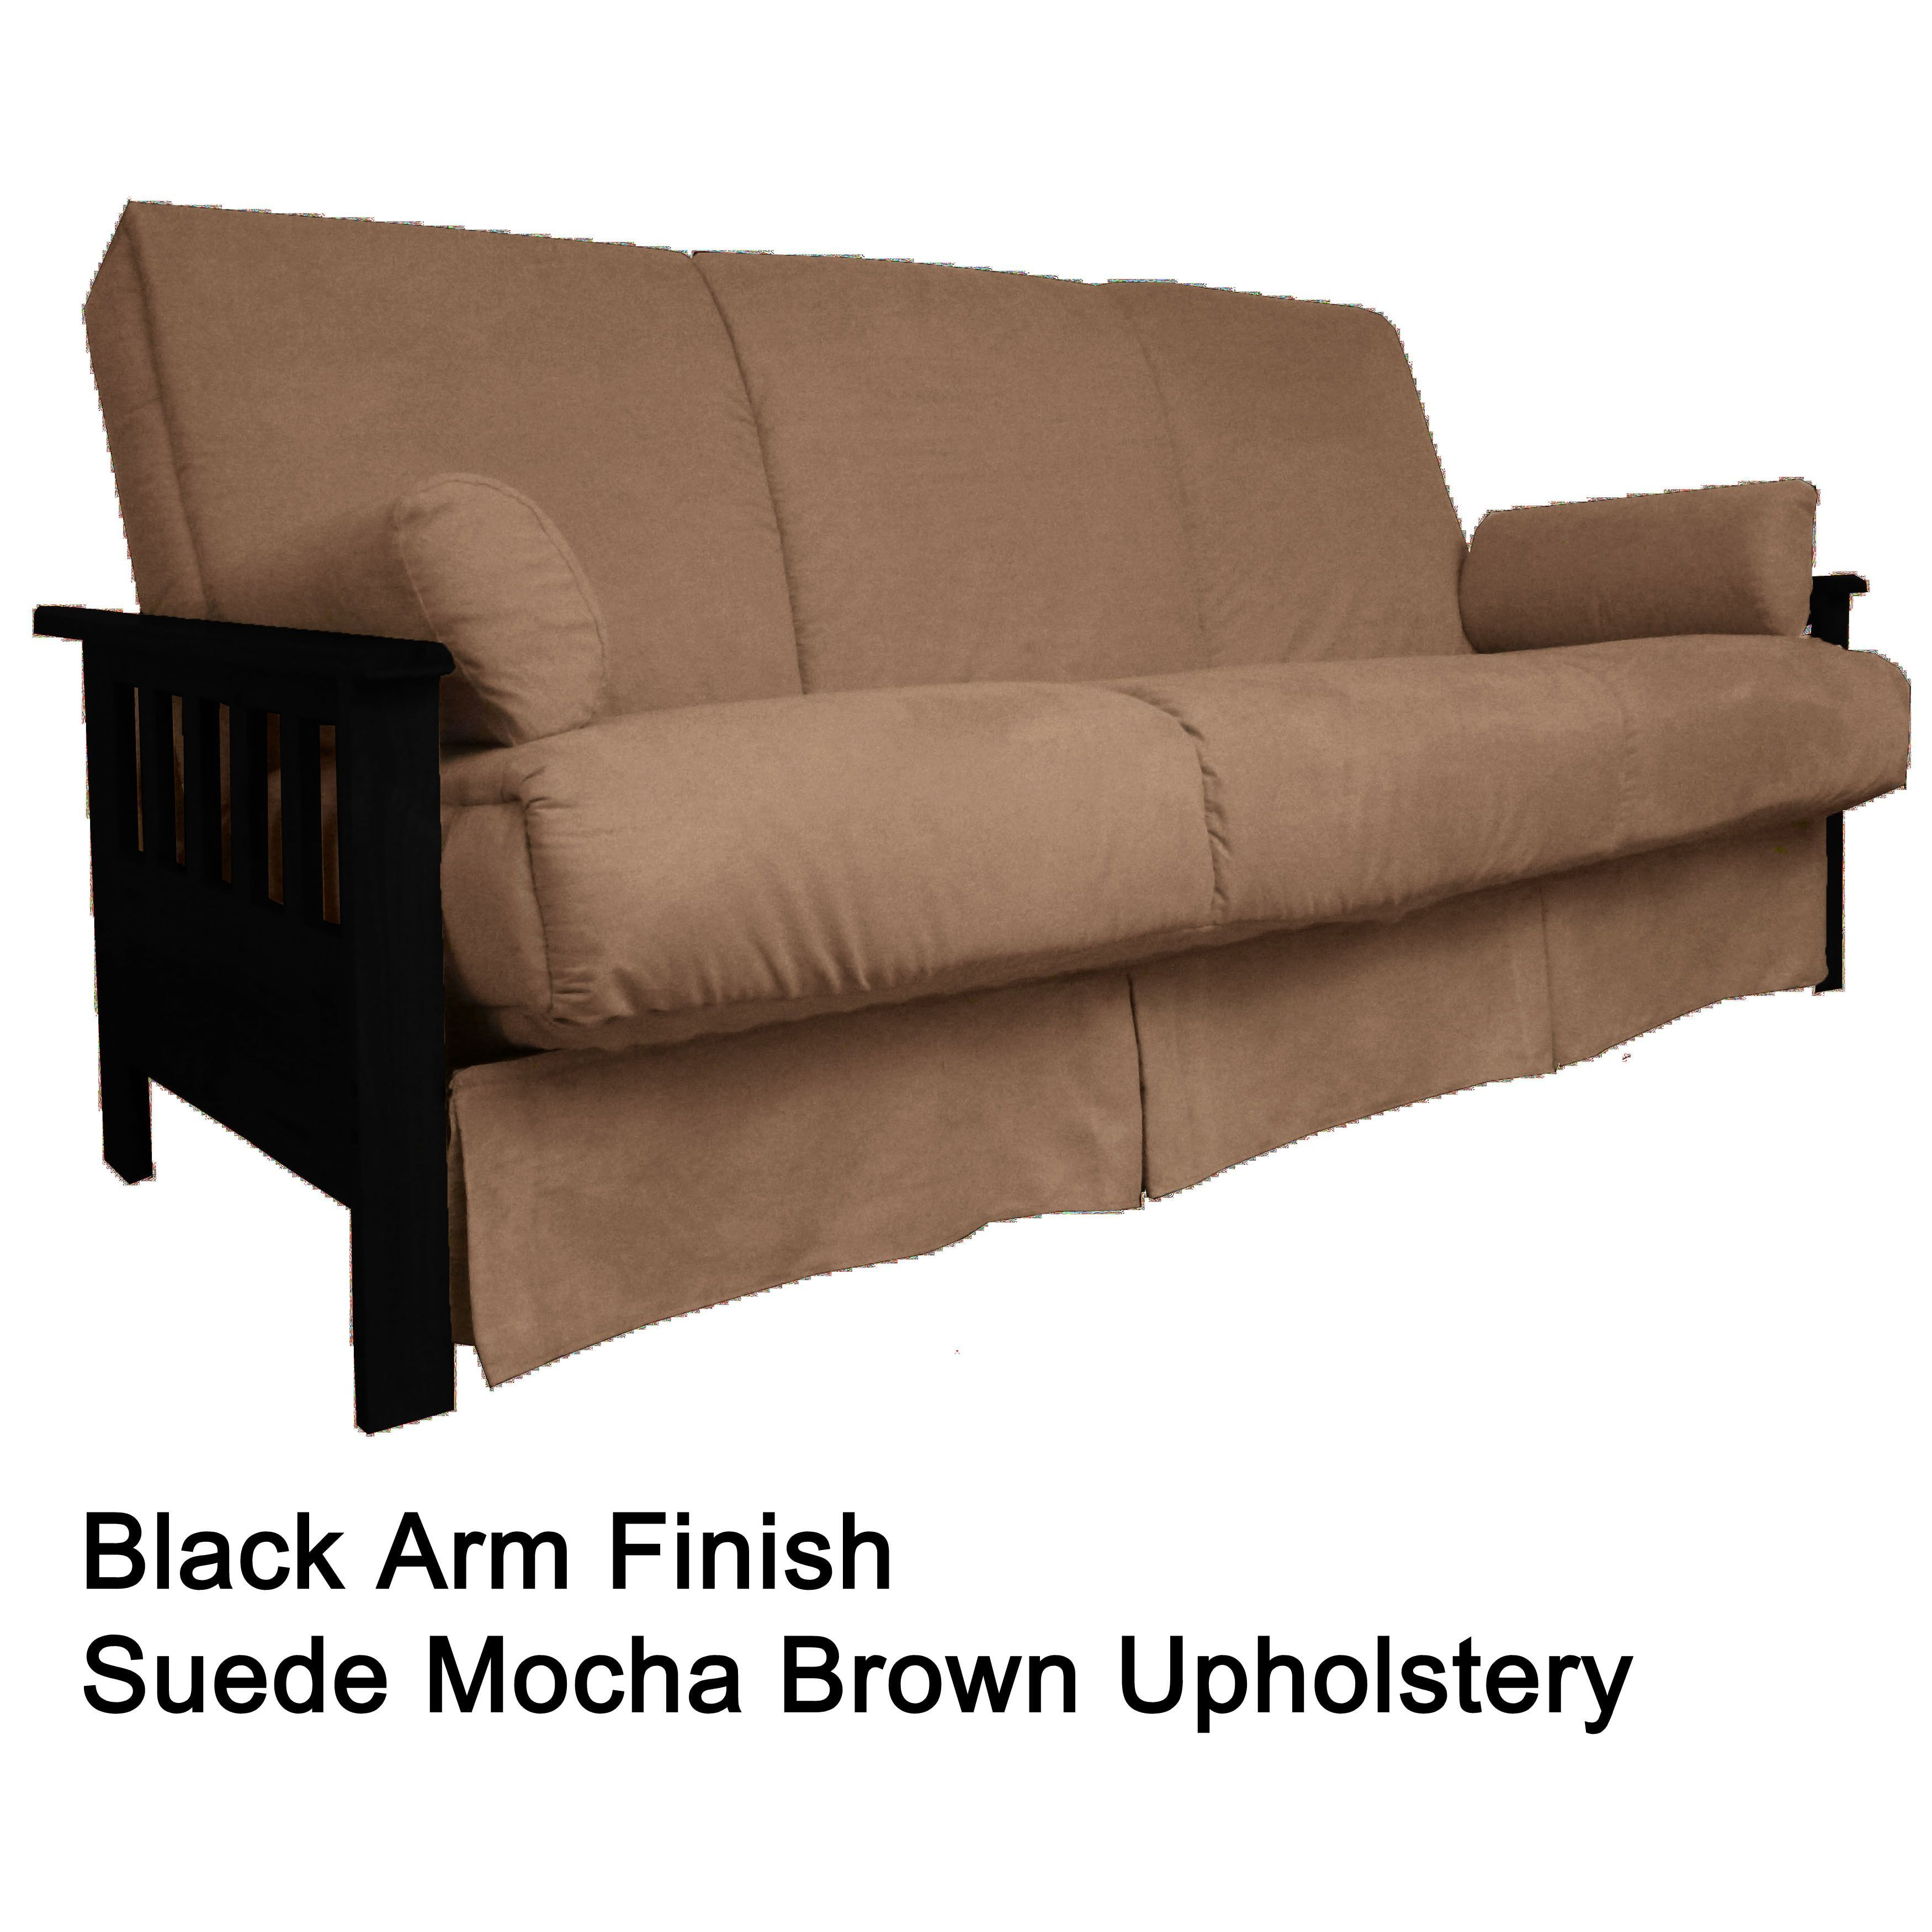 Epicfurnishings provo perfect sit sleep mission style pillow top full size sofa bed